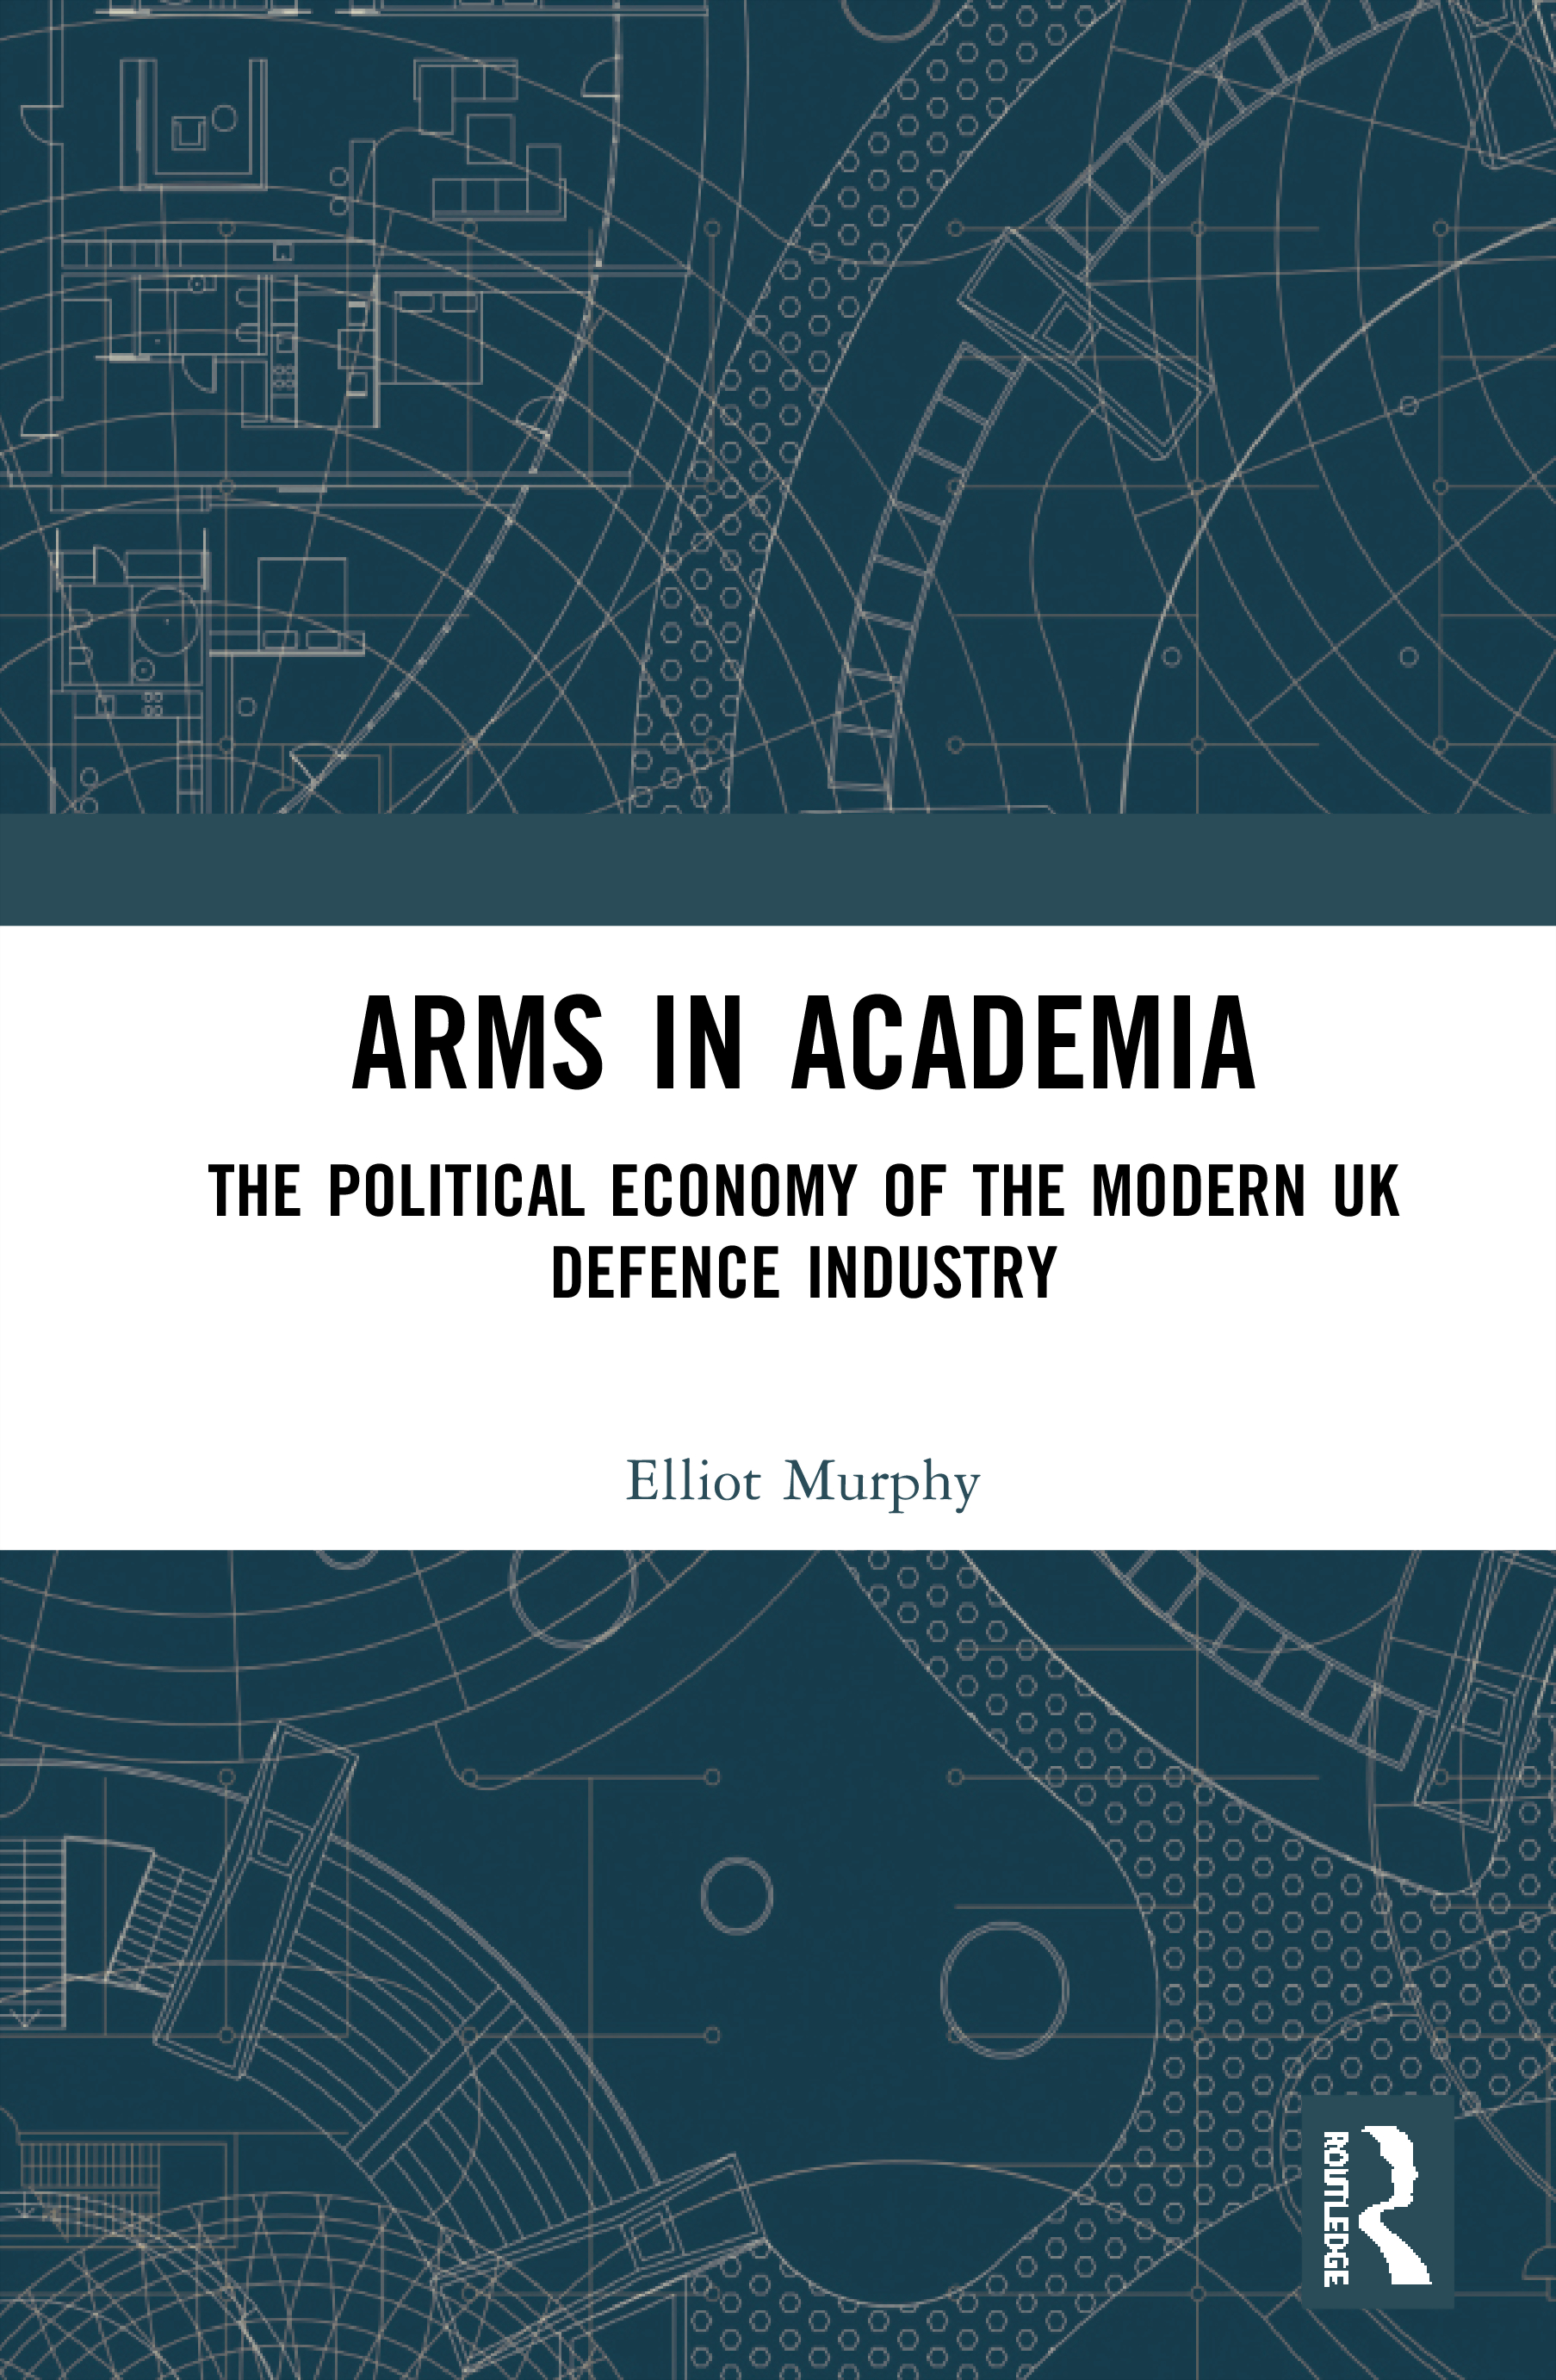 Arms in Academia: The Political Economy of the Modern UK Defence Industry, 1st Edition (Hardback) book cover